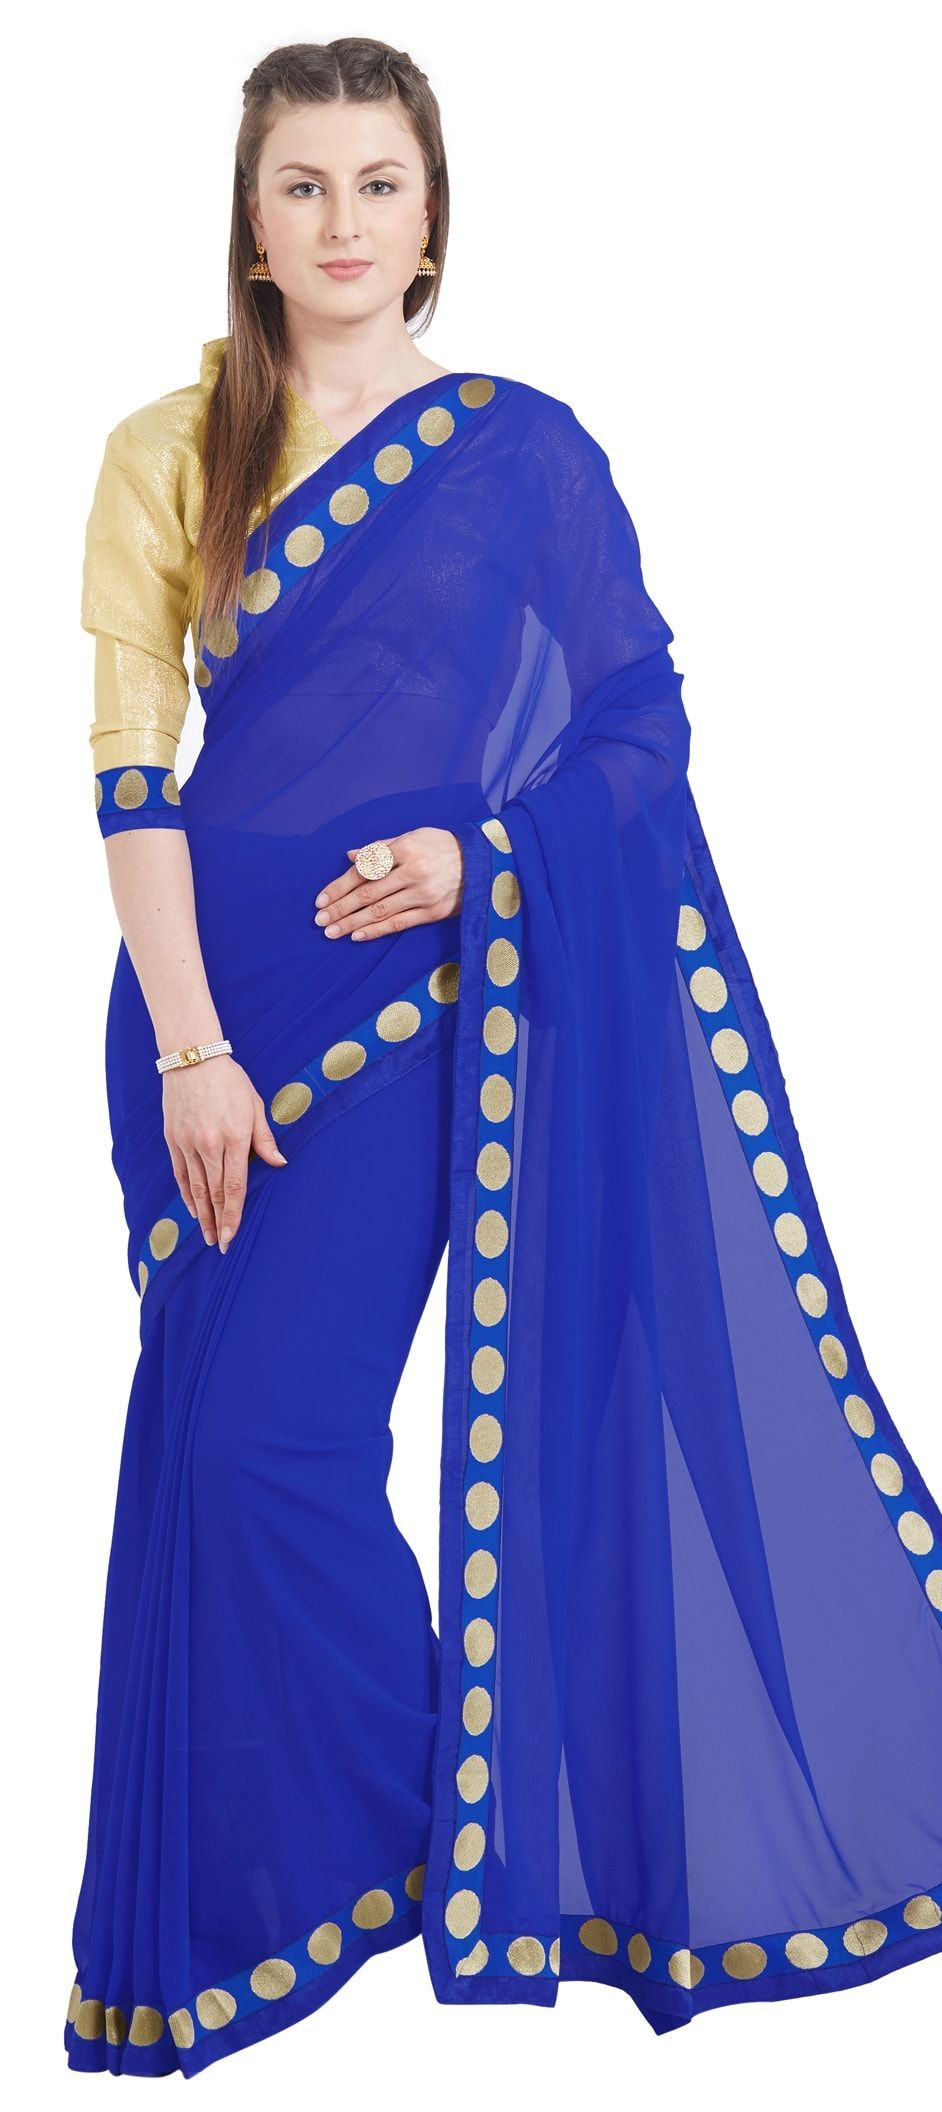 fa4096977b9 776796  Blue color family Party Wear Sarees with matching unstitched ...